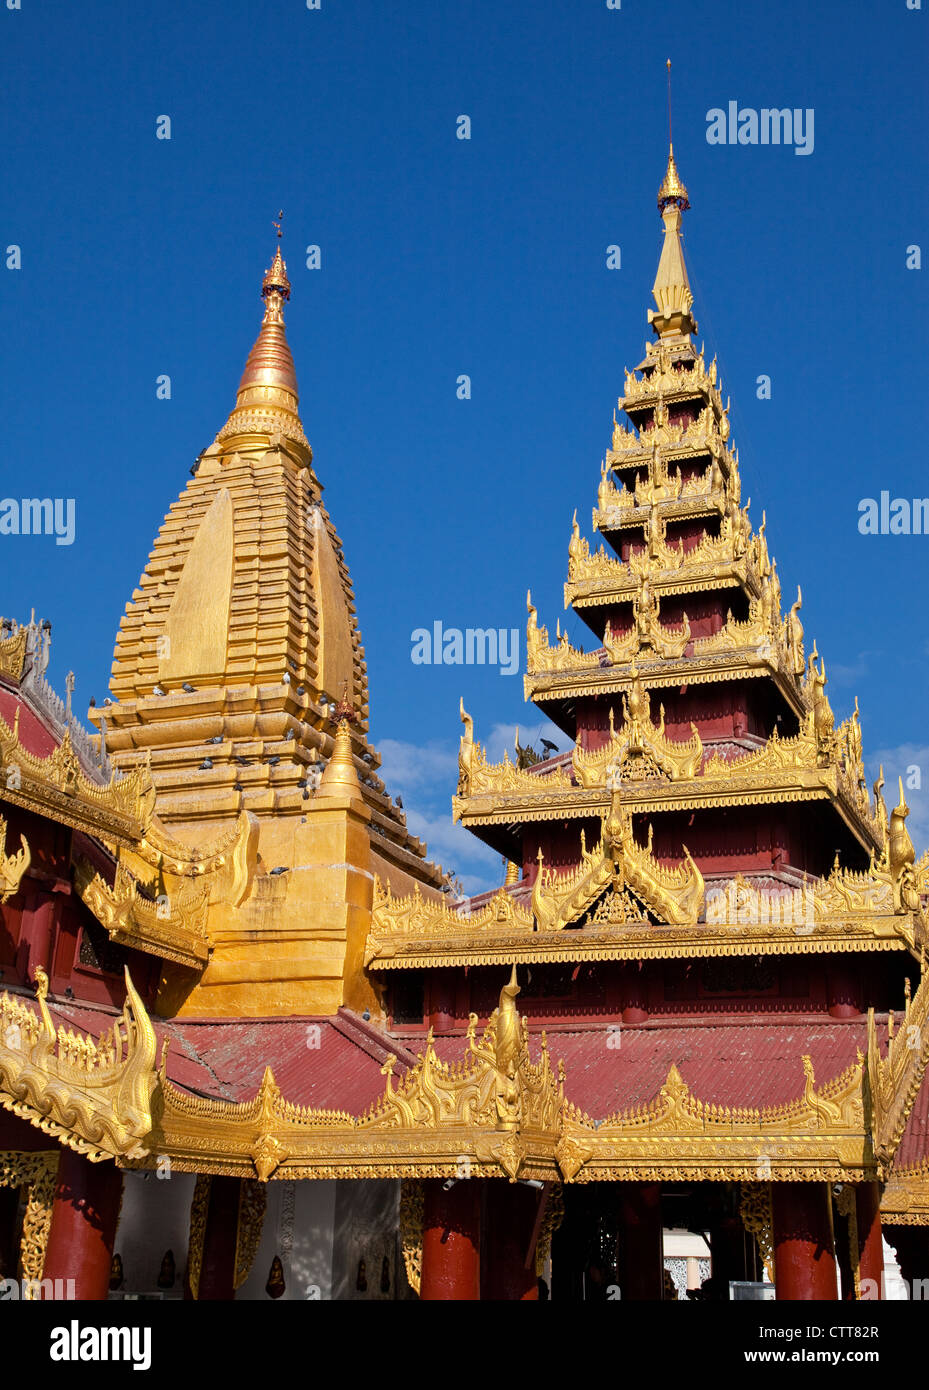 Myanmar, Burma, Shwezegon (Shwezigon) Pagoda, near Bagan. Stock Photo